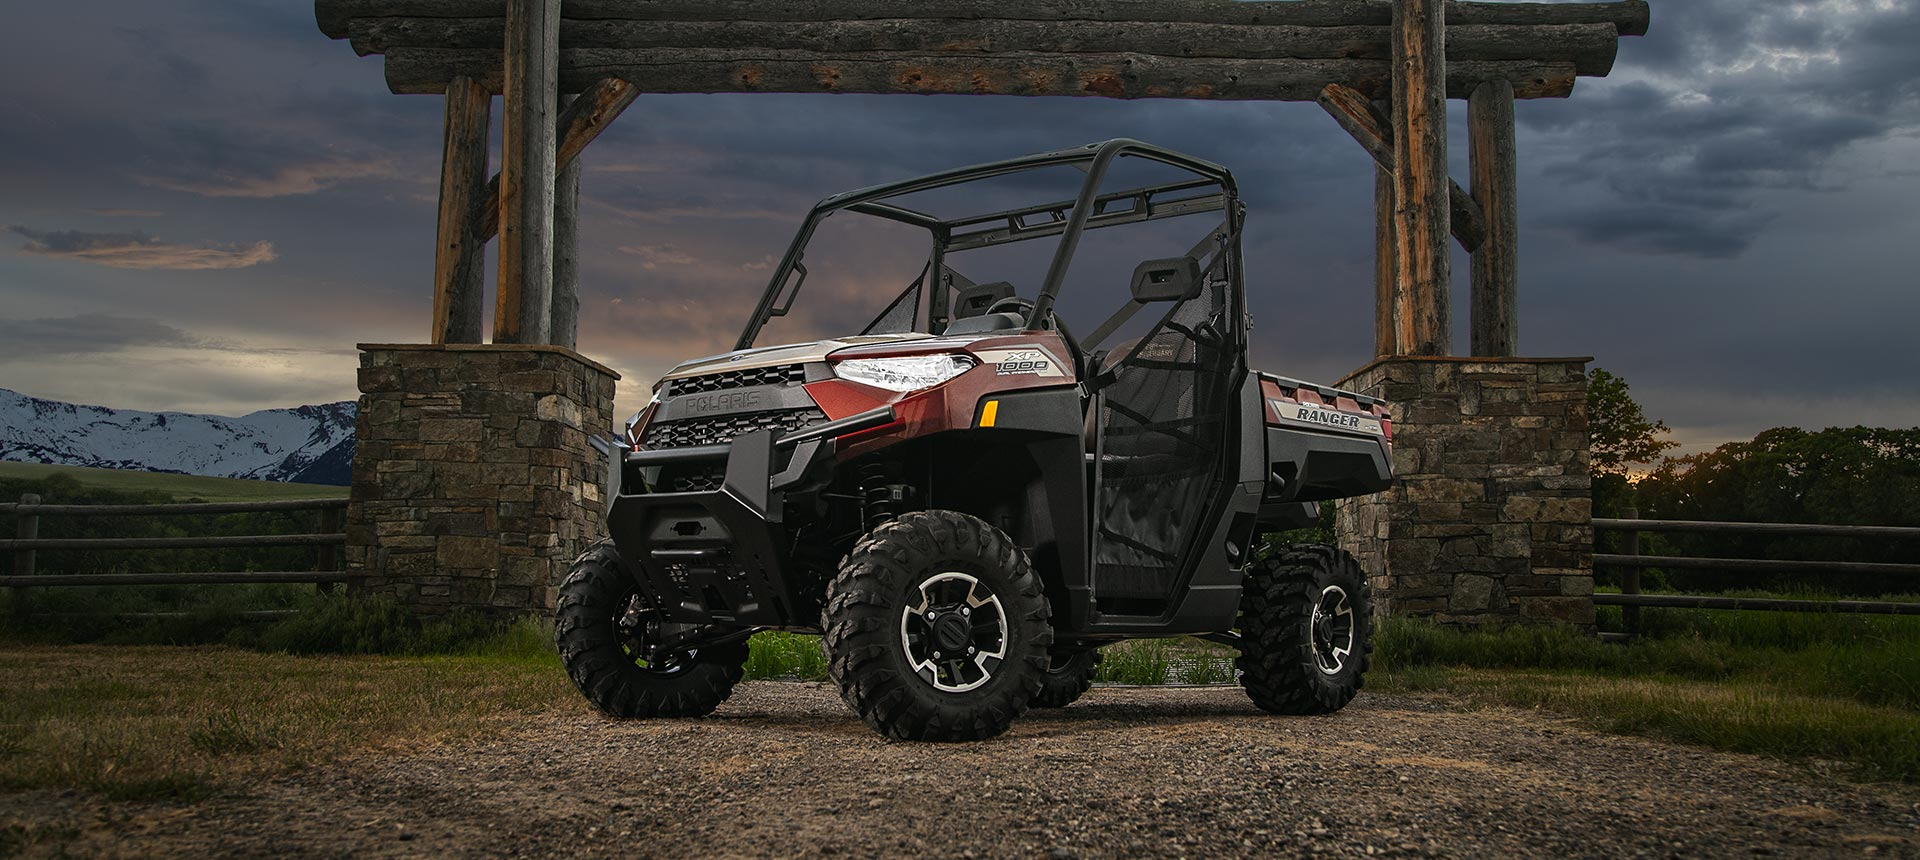 2019 Polaris Ranger XP 1000 EPS in Afton, Oklahoma - Photo 8